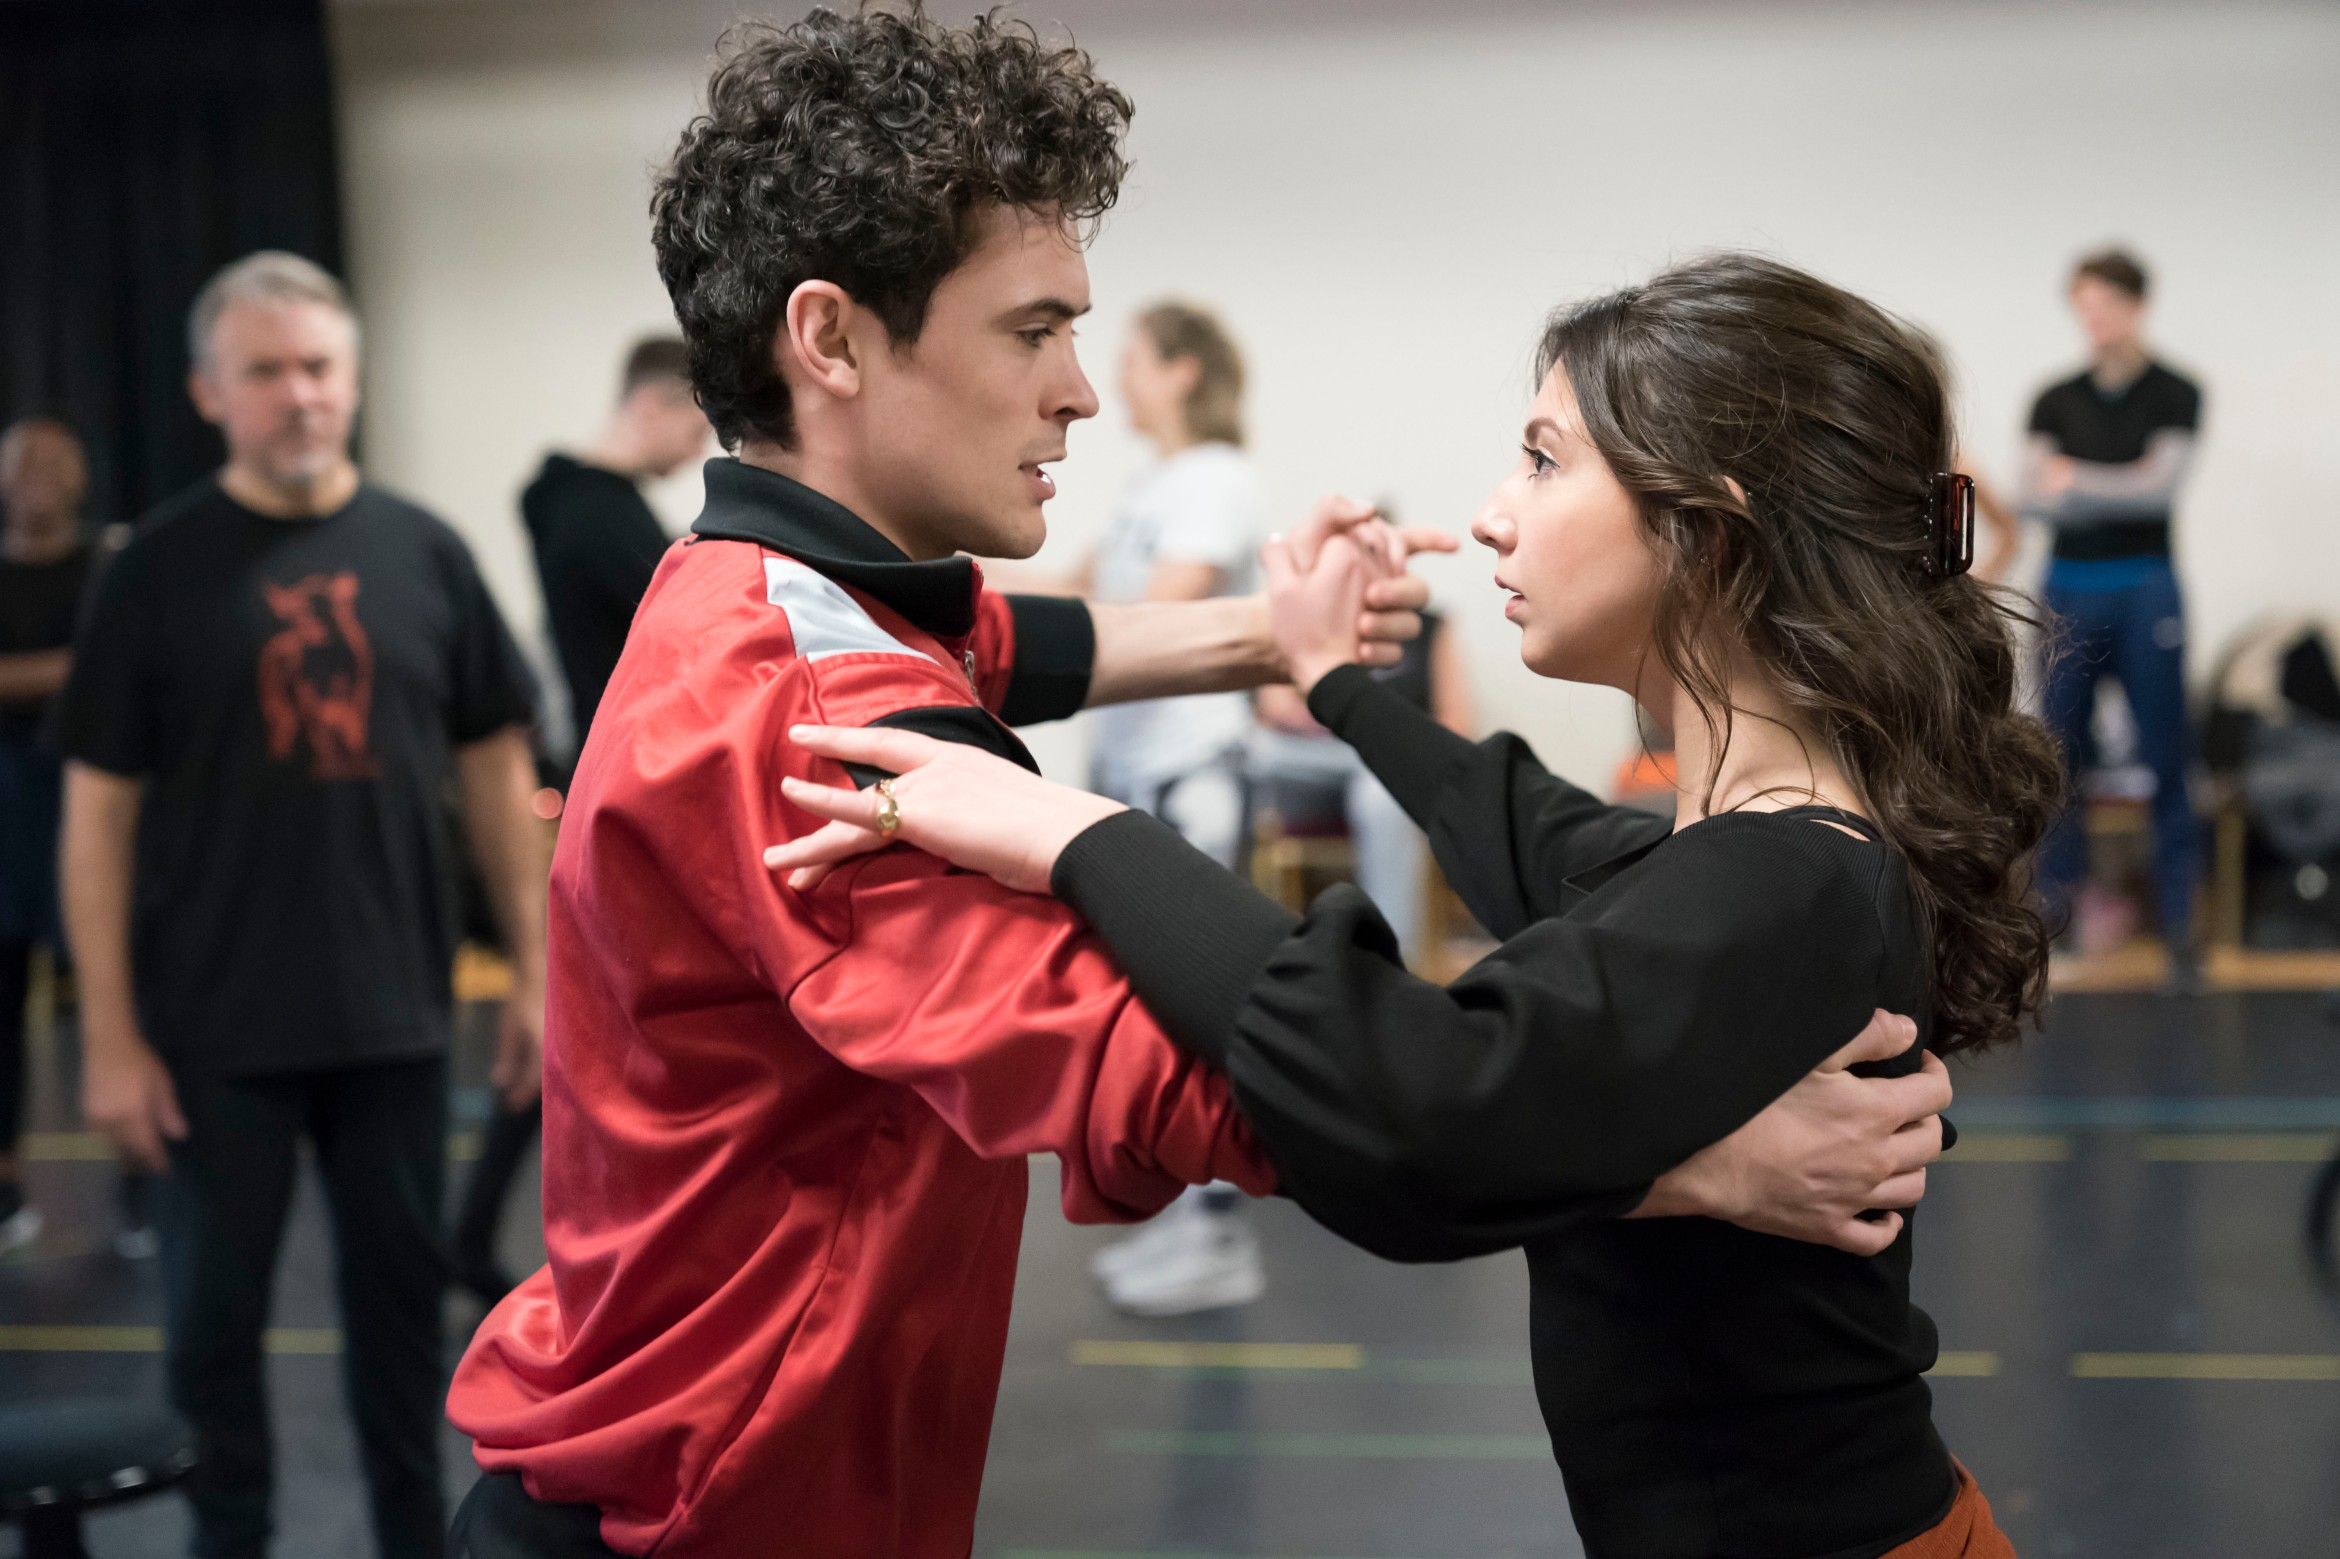 Jonny Labey & Zizi Strallen in rehearsals for Strictly Ballroom The Musical. Photo by Johan Persson_00207.jpg